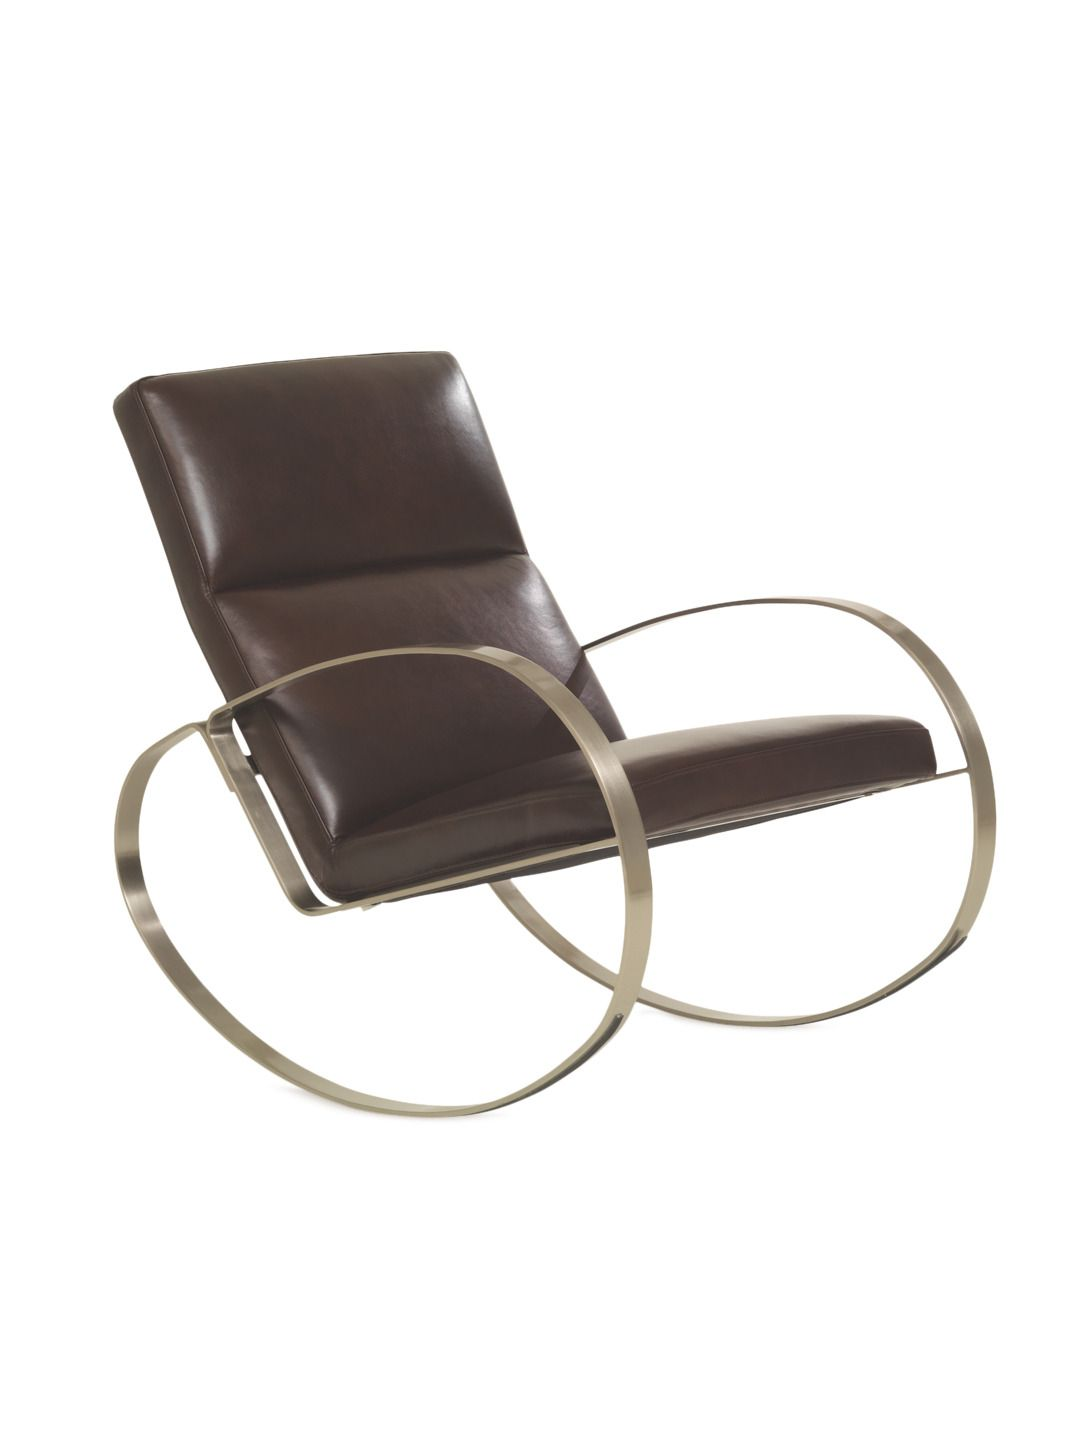 Incredible Ryder Rocking Chair By Mitchell Gold Bob Williams At Gilt Inzonedesignstudio Interior Chair Design Inzonedesignstudiocom